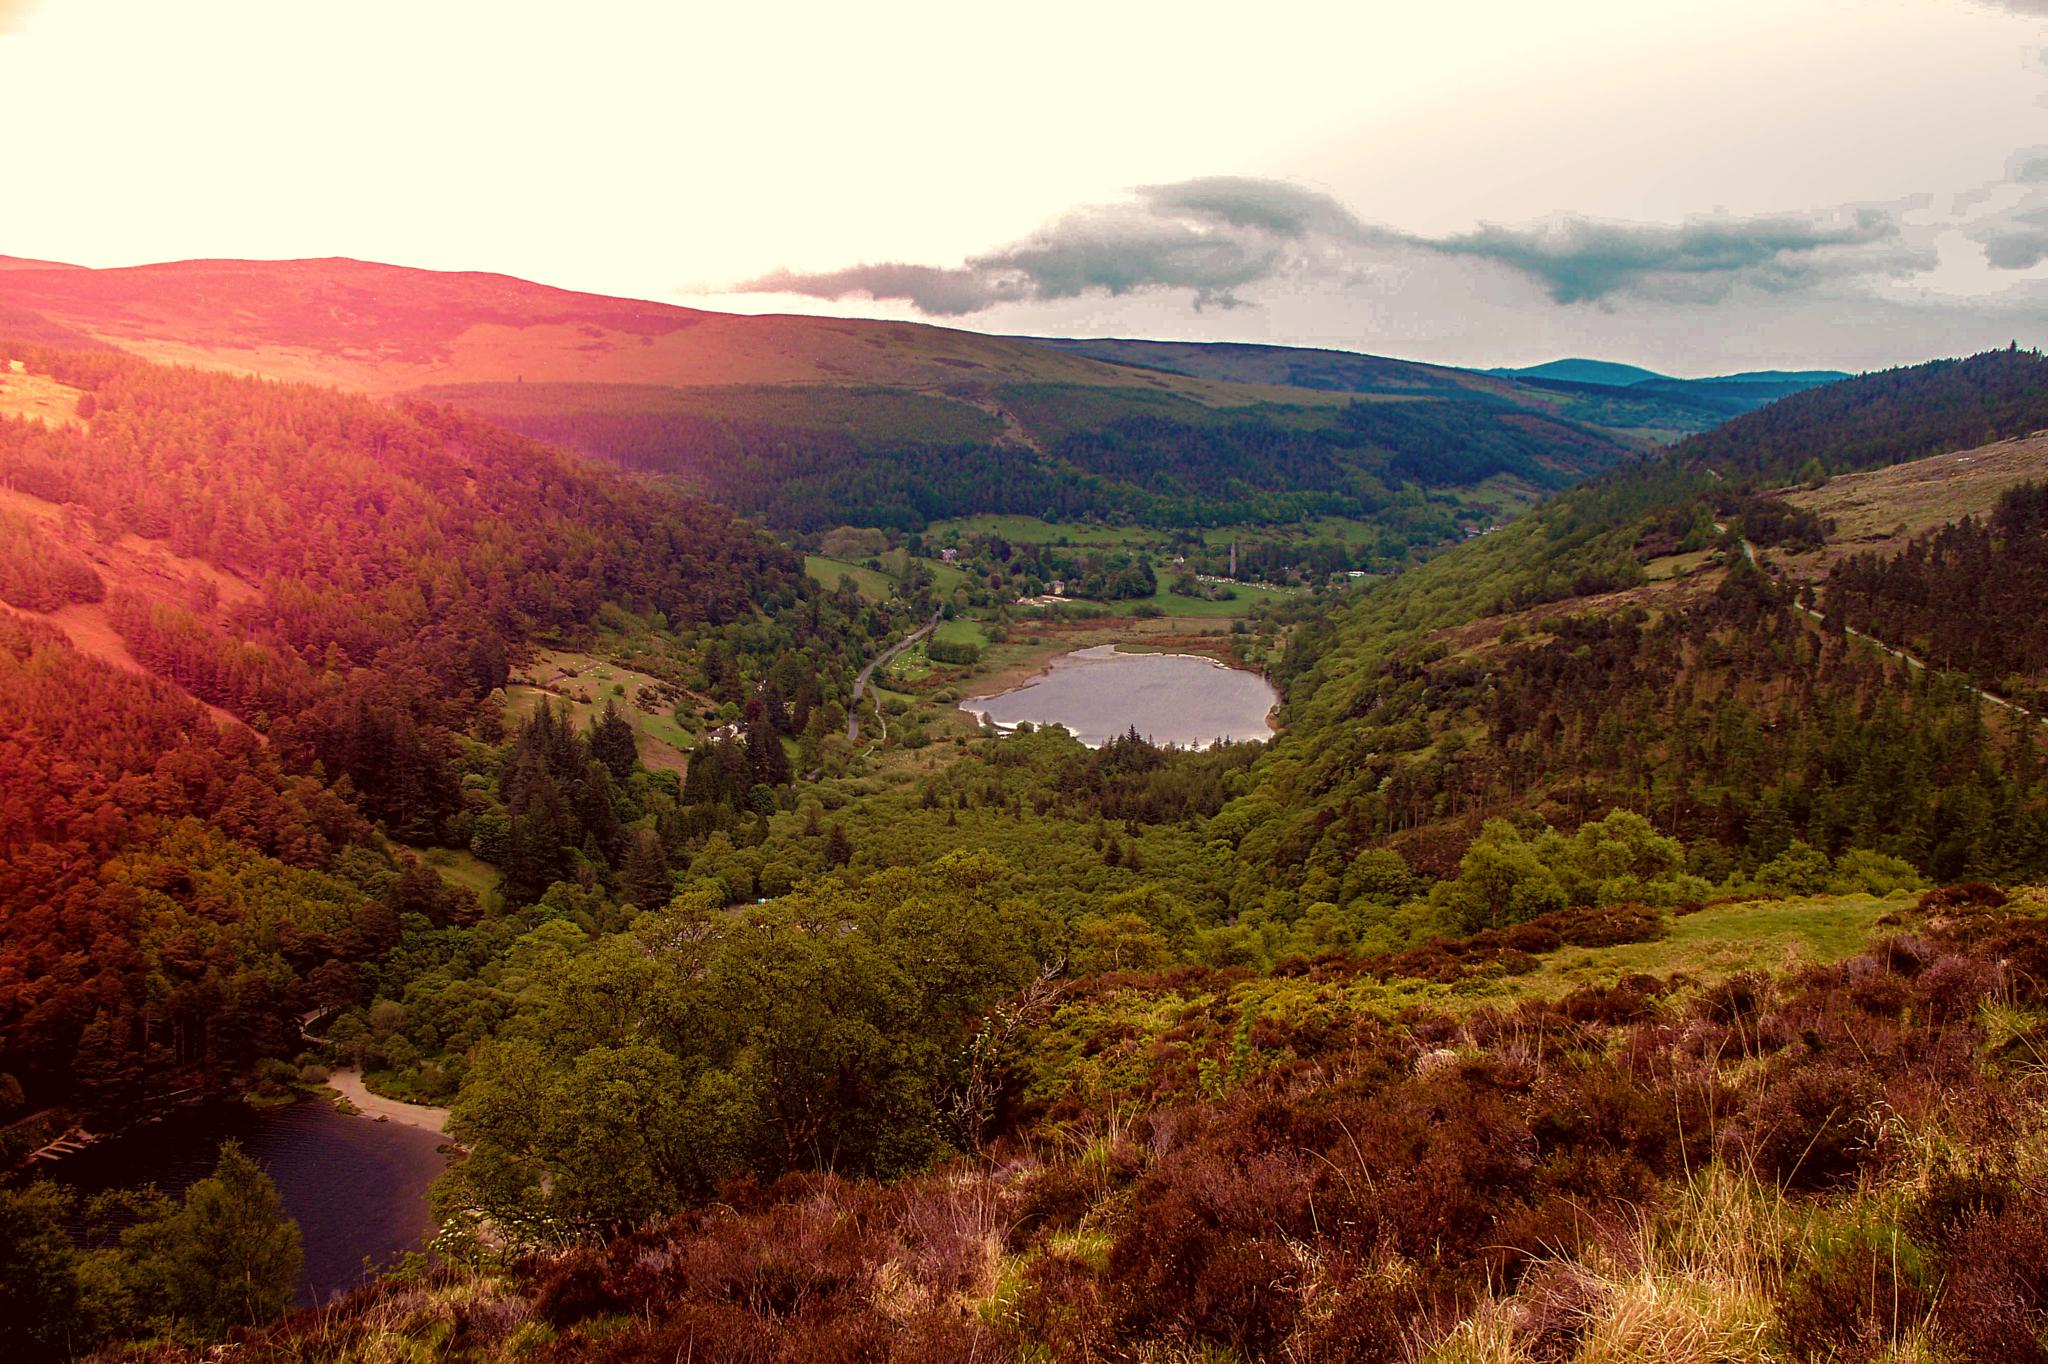 Glendelough by photograffer